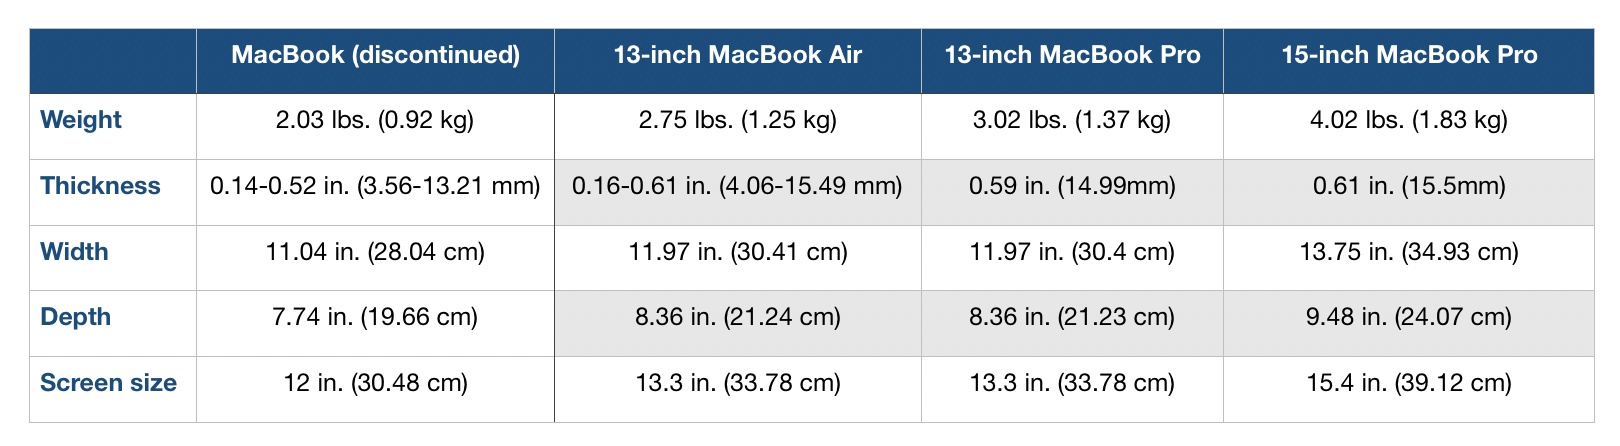 MacBook Air MacBook Pro size and weight comparison